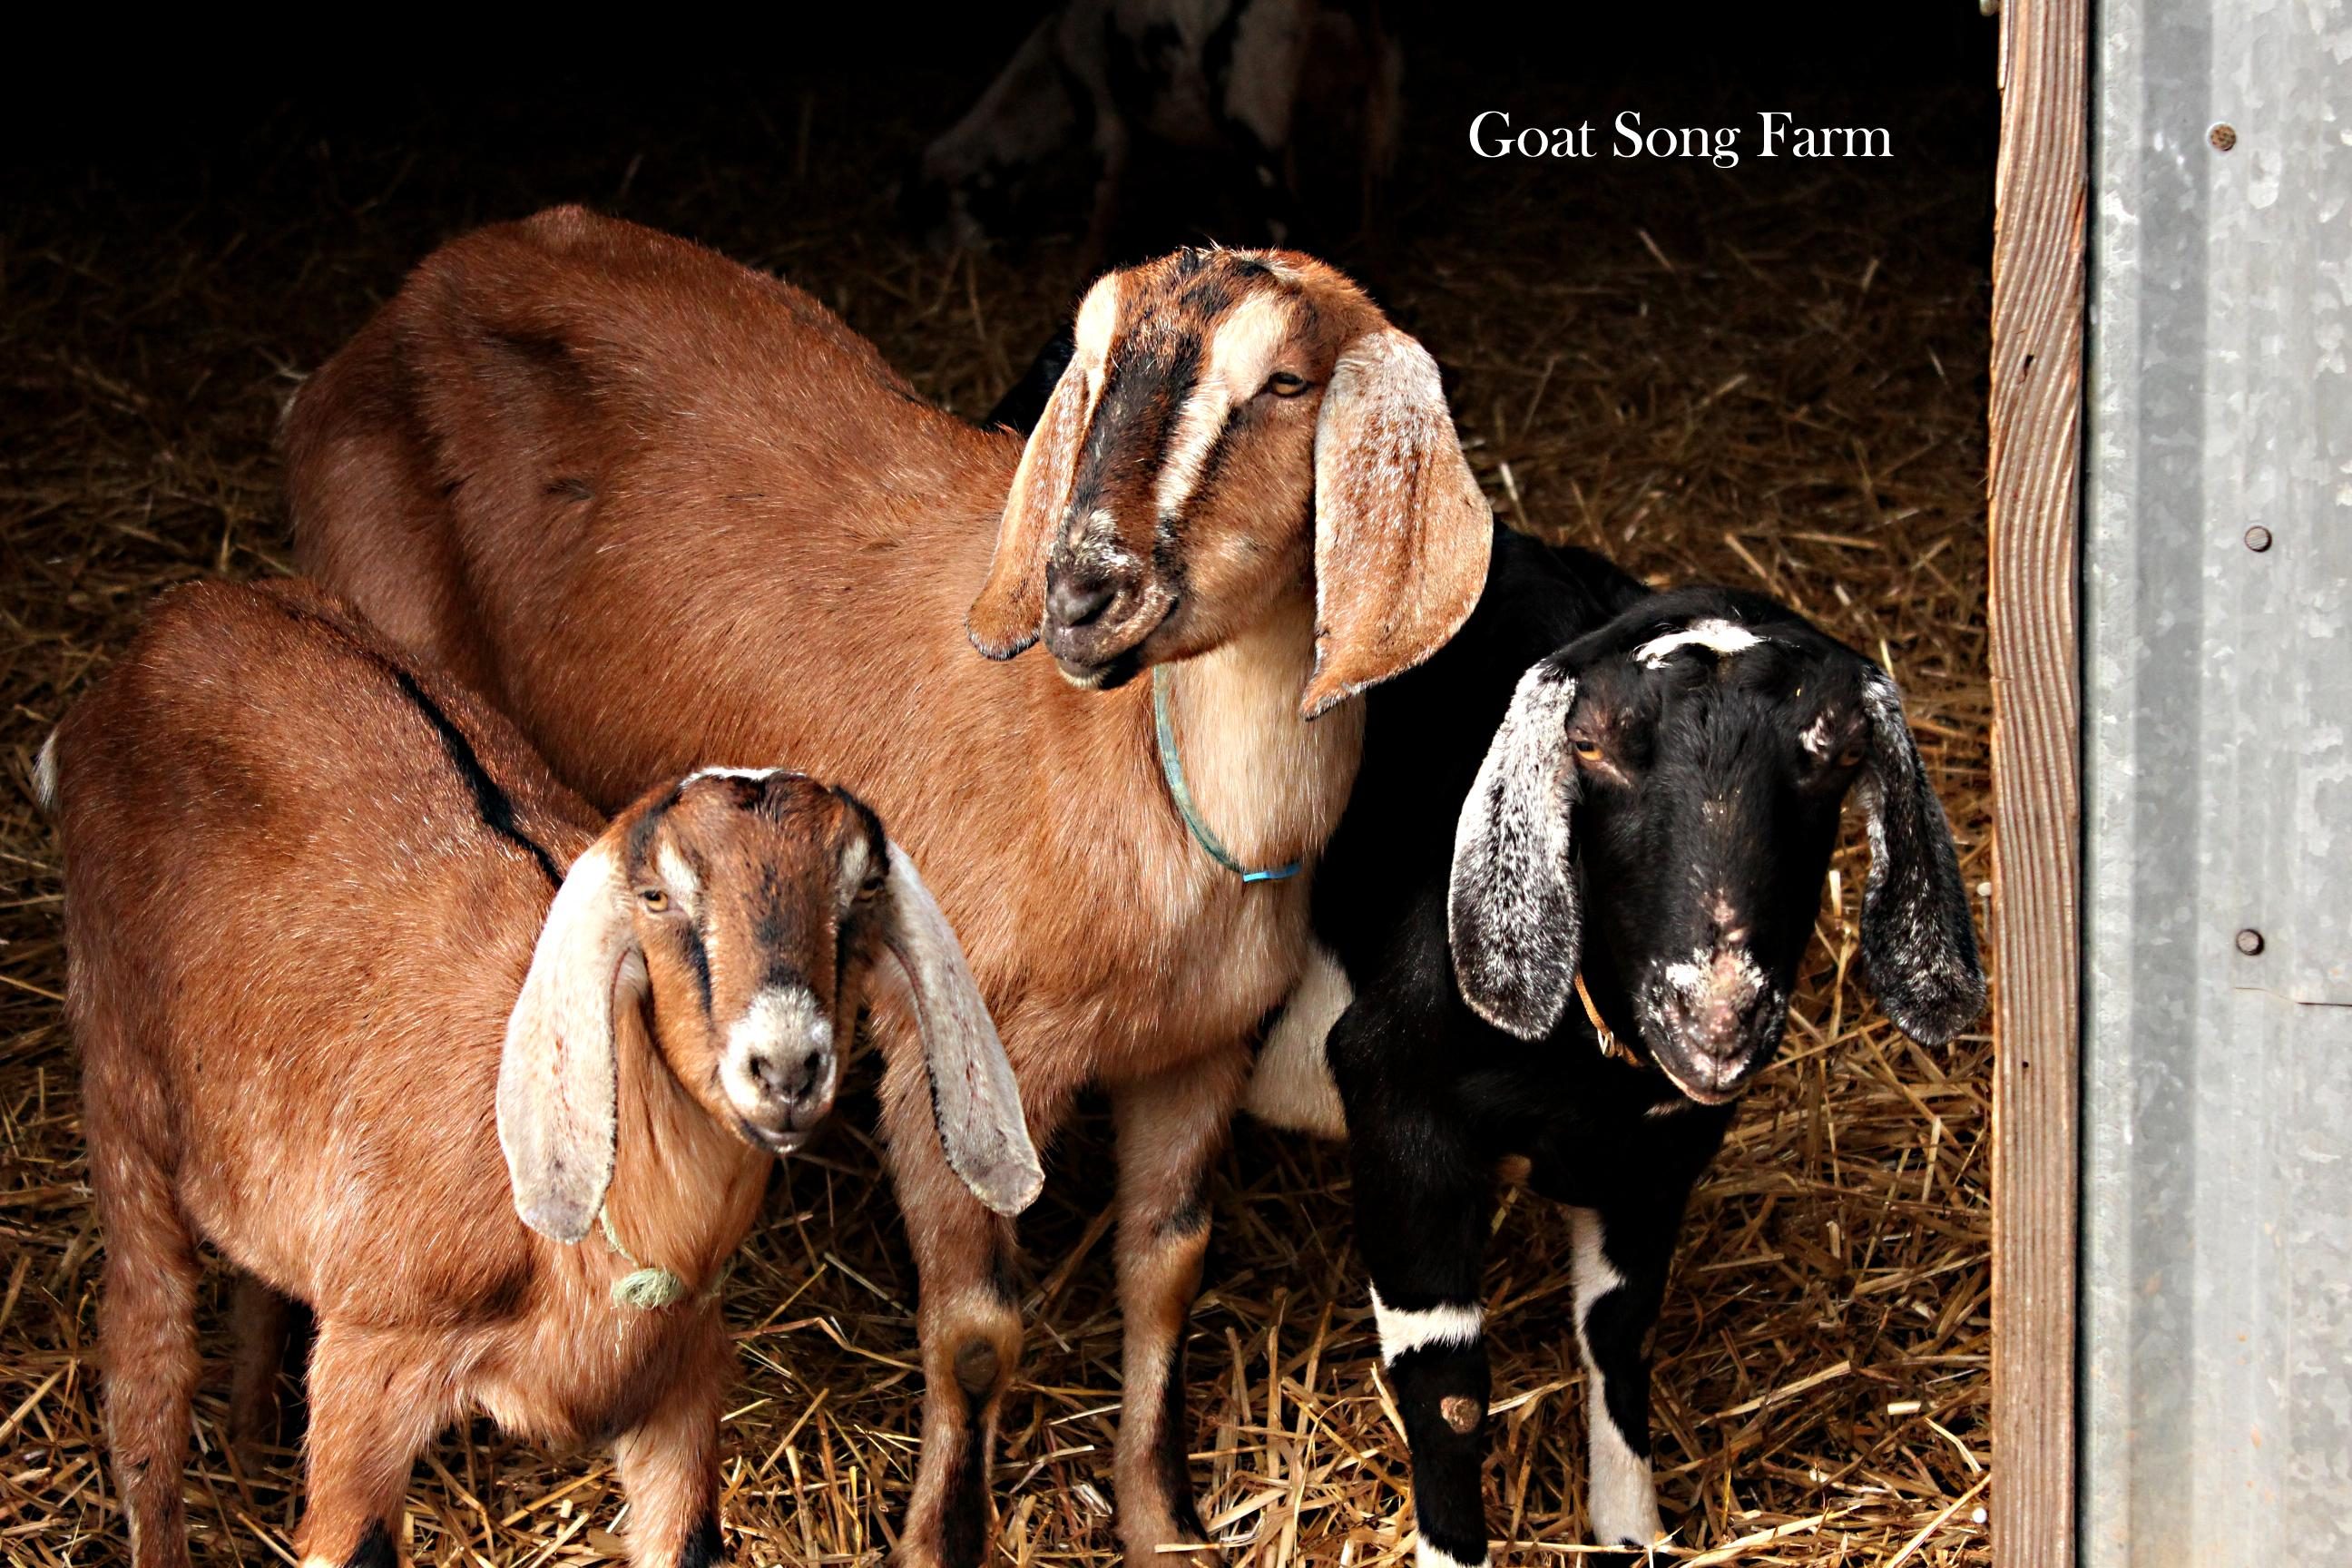 Goat Song Farm goats